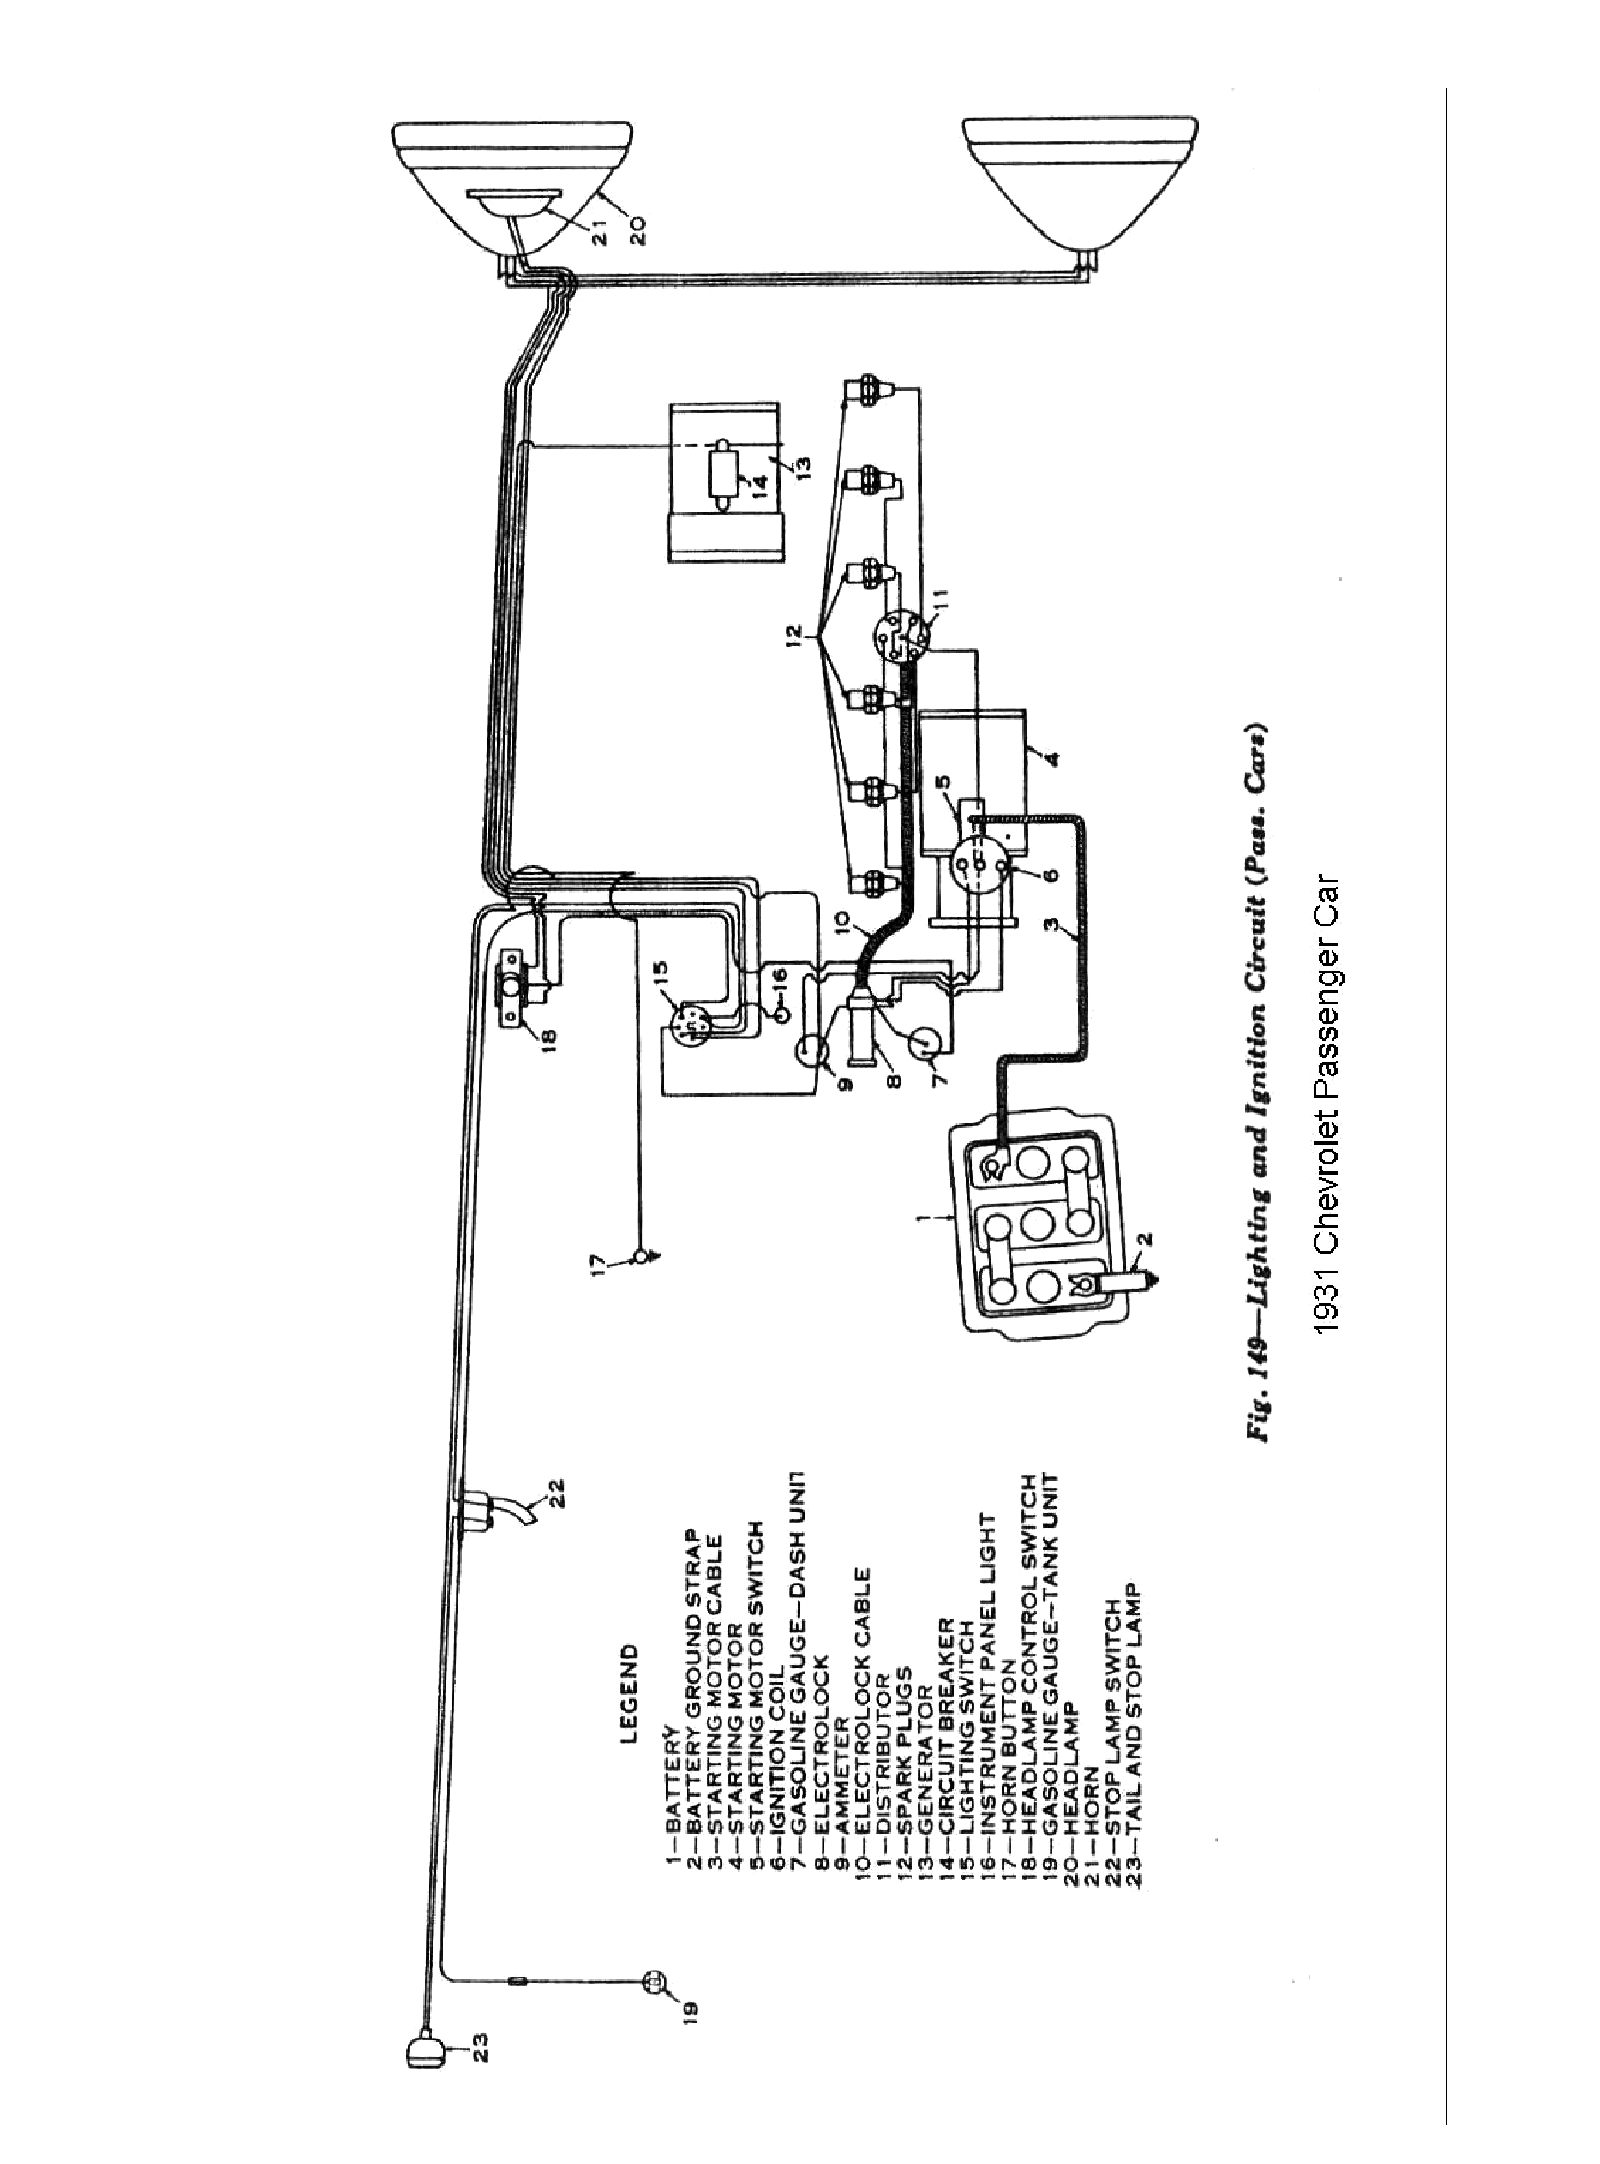 Page 5 moreover 91 as well 1455926 Alternator Wiring Help further Ford Ranger Heater Hose Diagram additionally 1977 Chevy Truck Wiring Diagram. on gm alternator wiring diagram